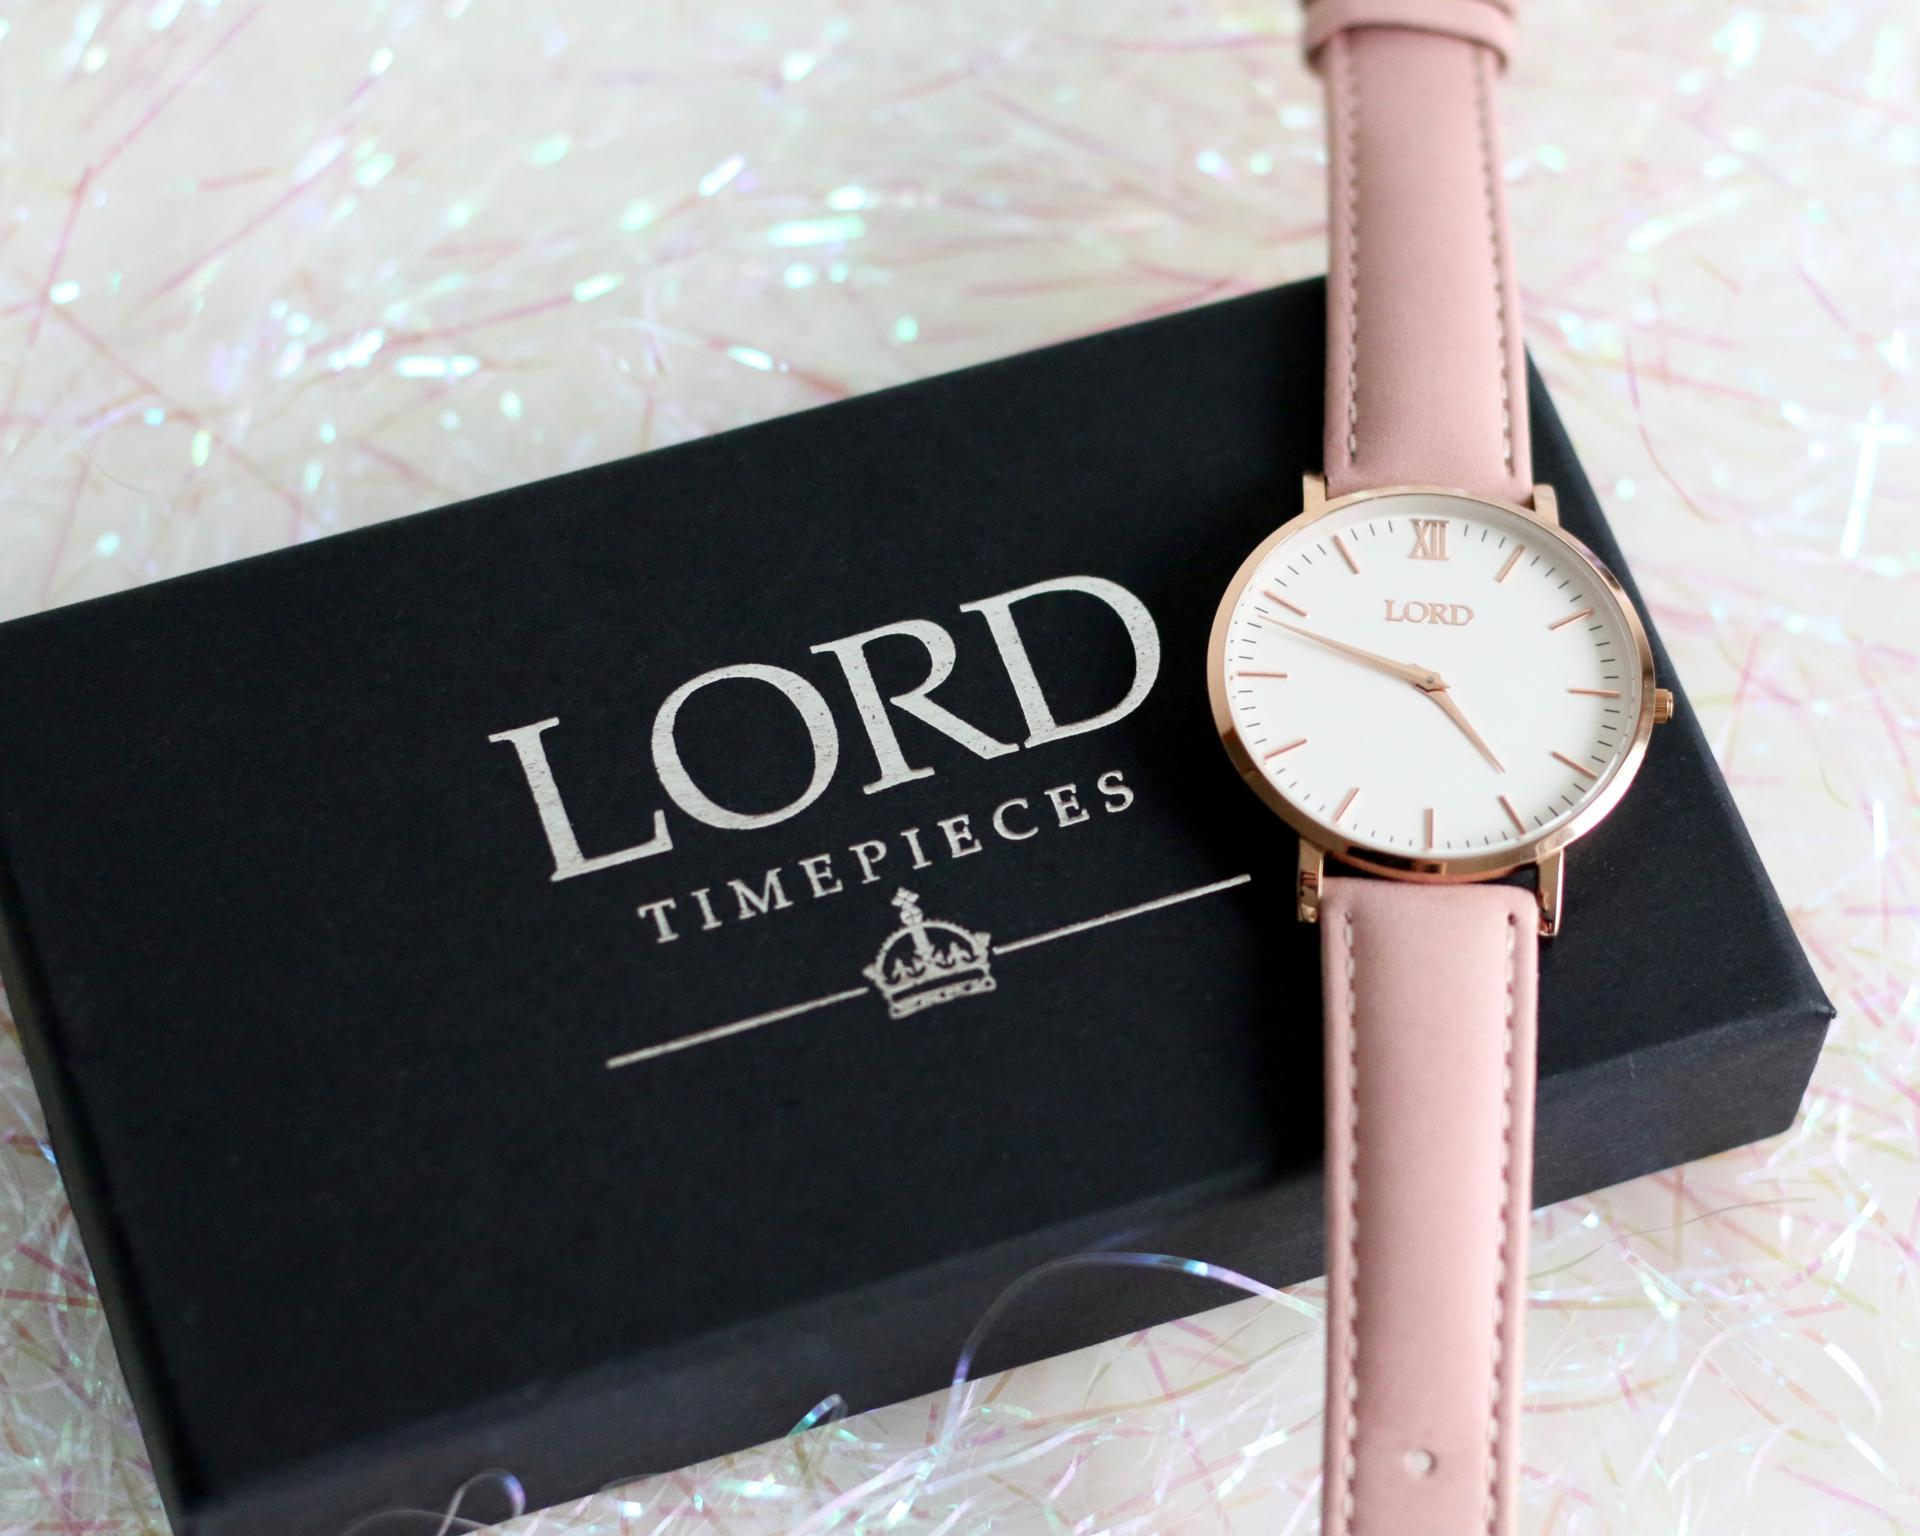 lord-timepieces-rose-gold-pink-watch